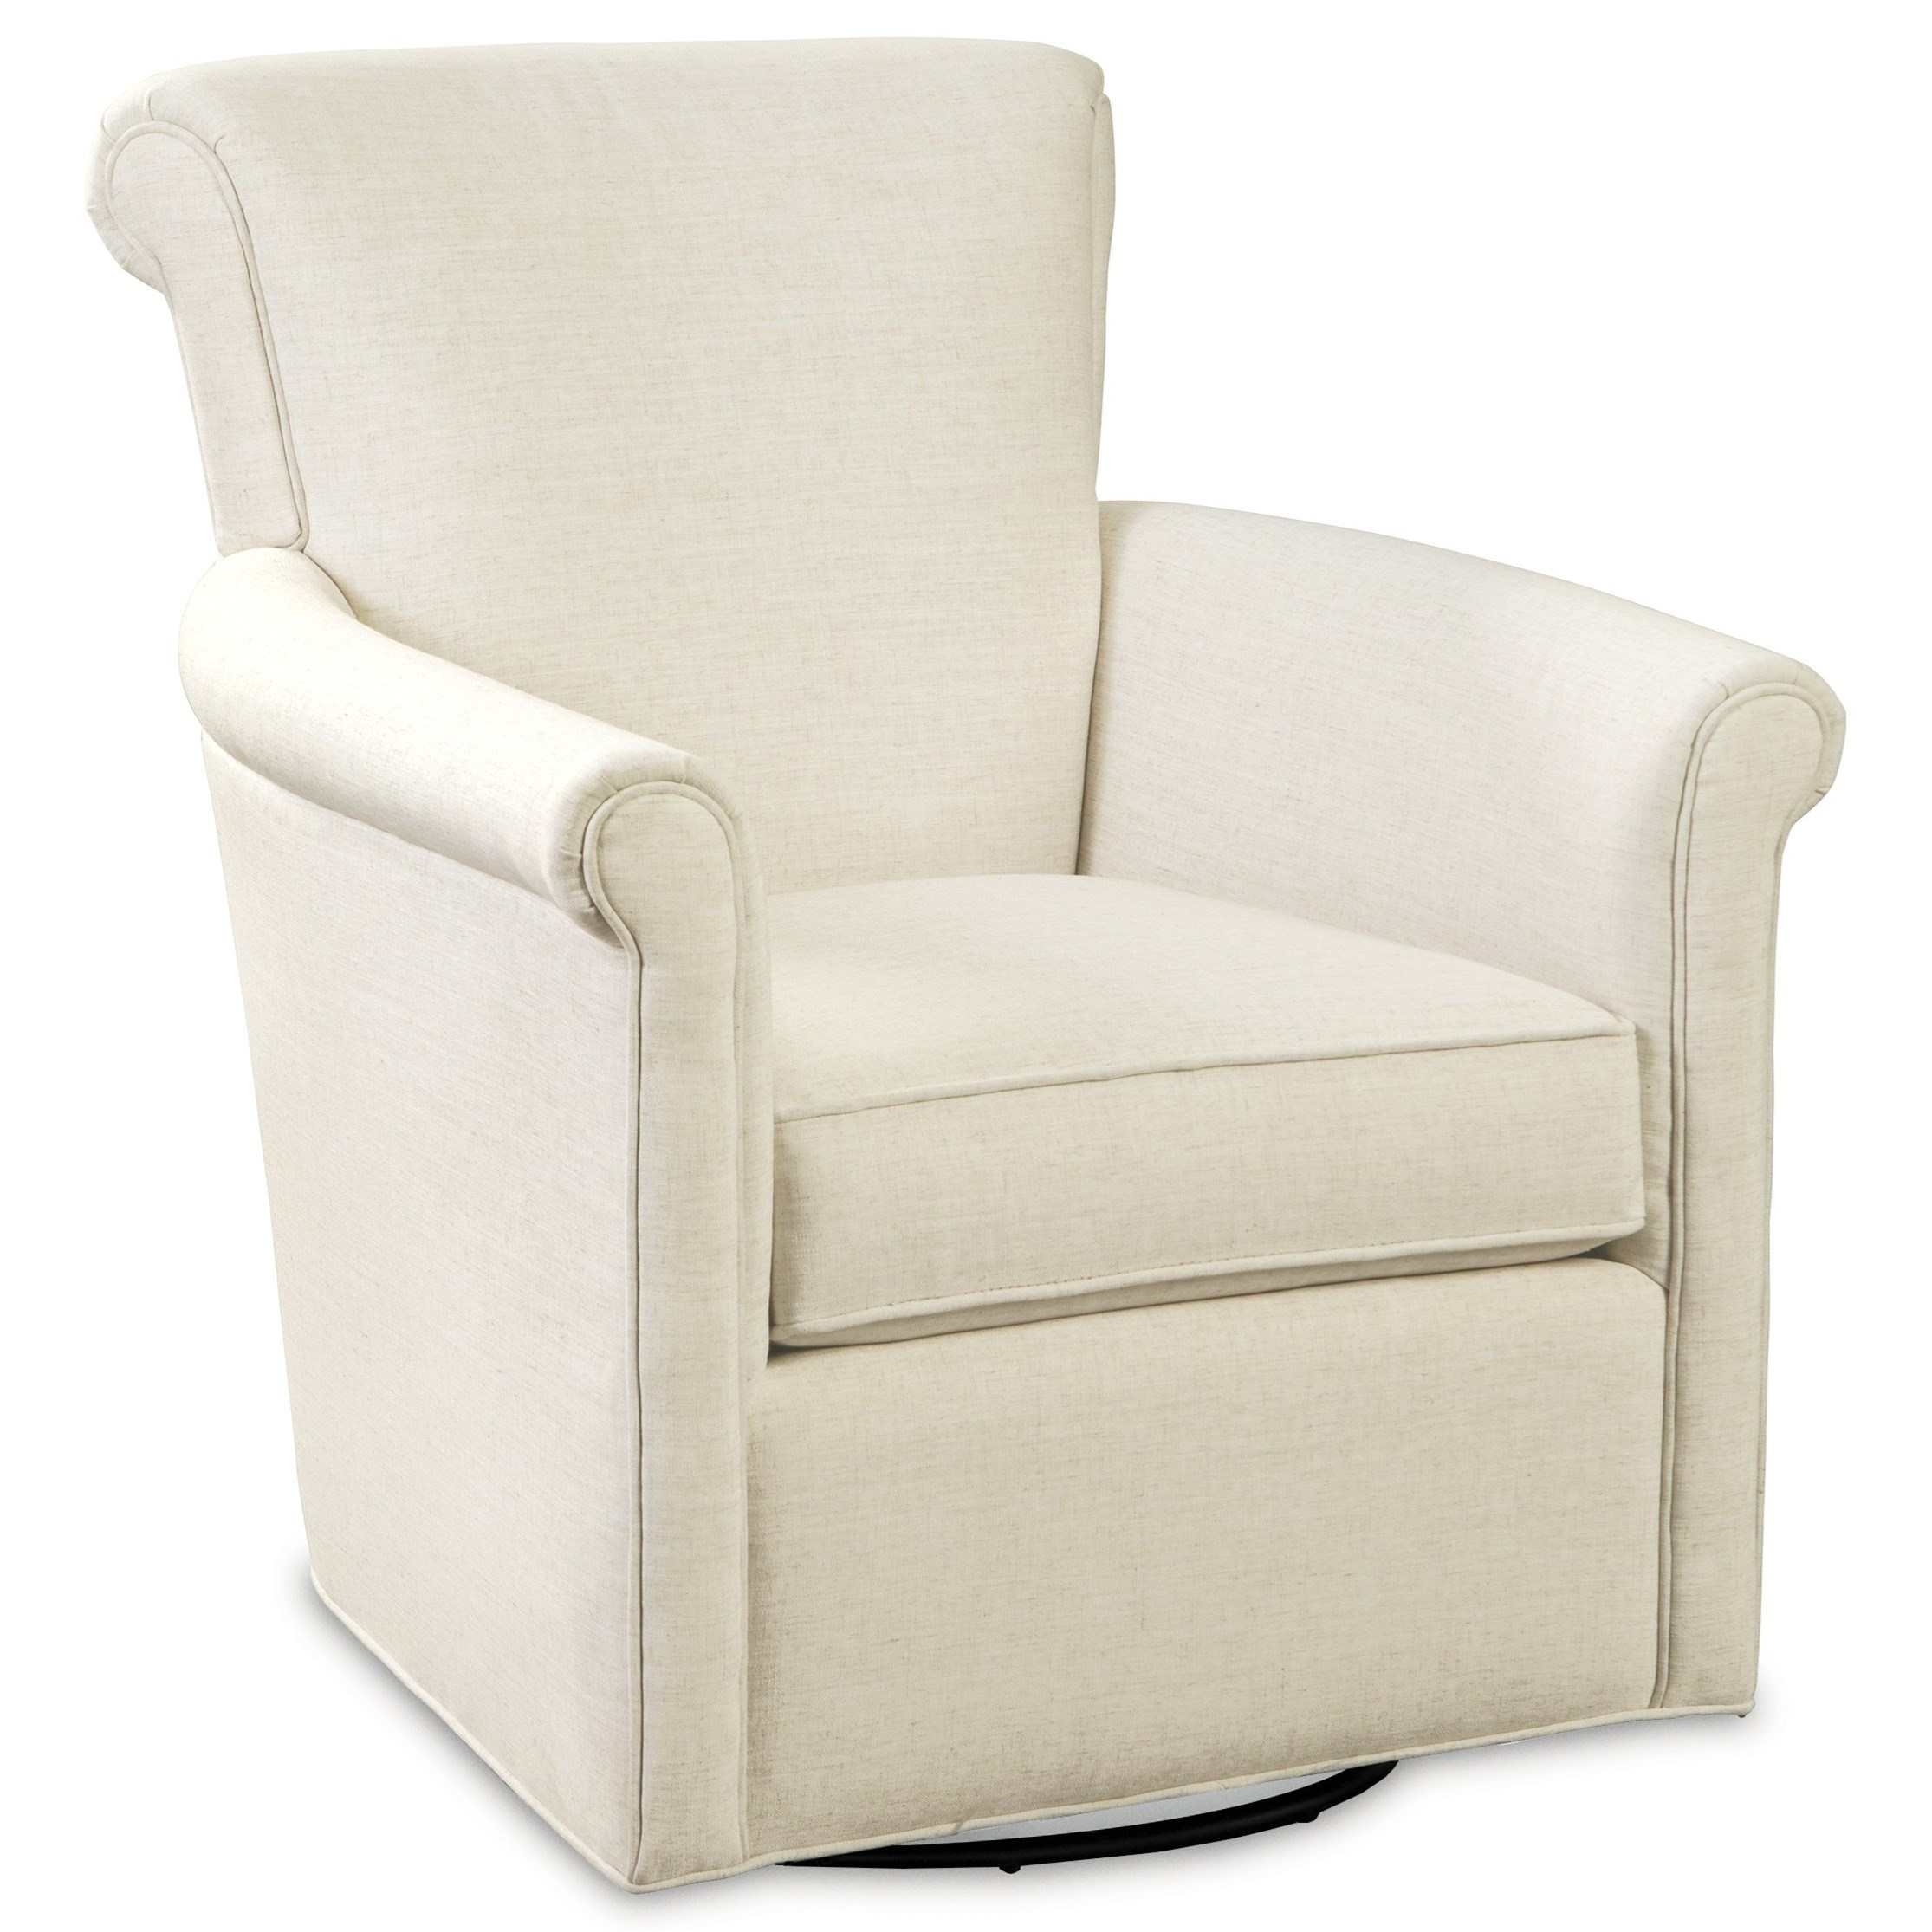 Transitional Swivel Chair with Rolled Arms and Back